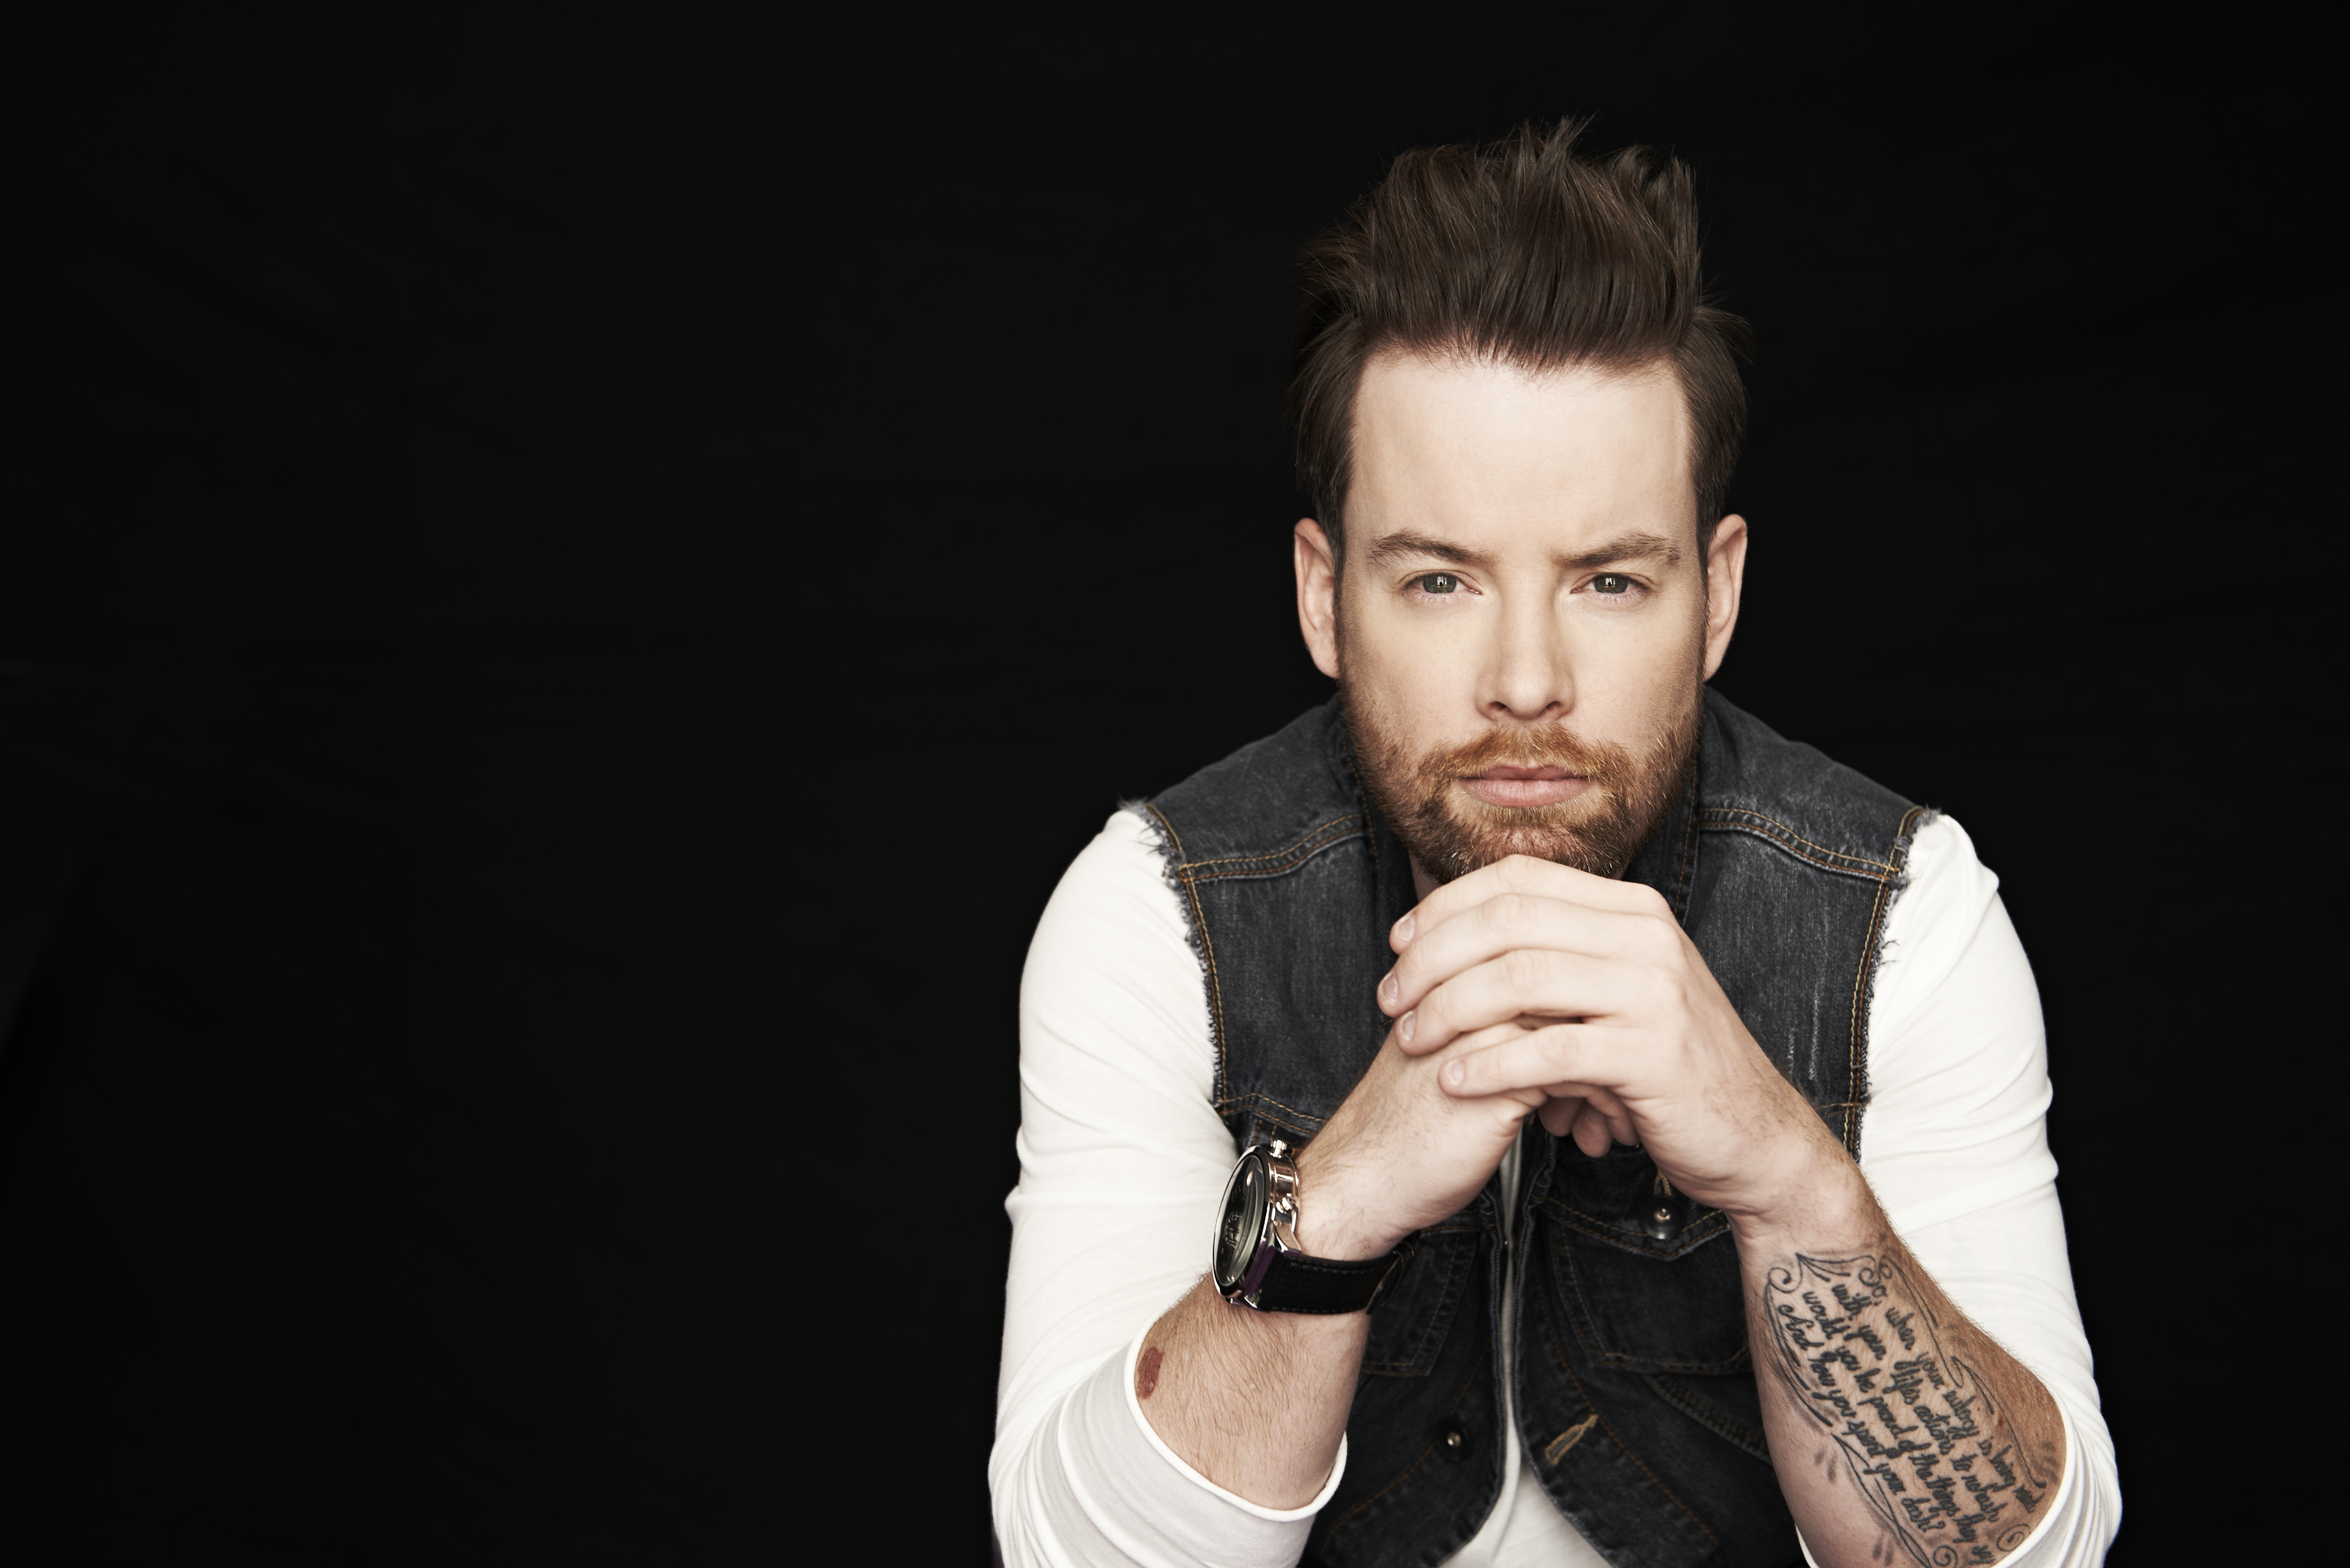 David Cook Idols Middle Child Grows Up